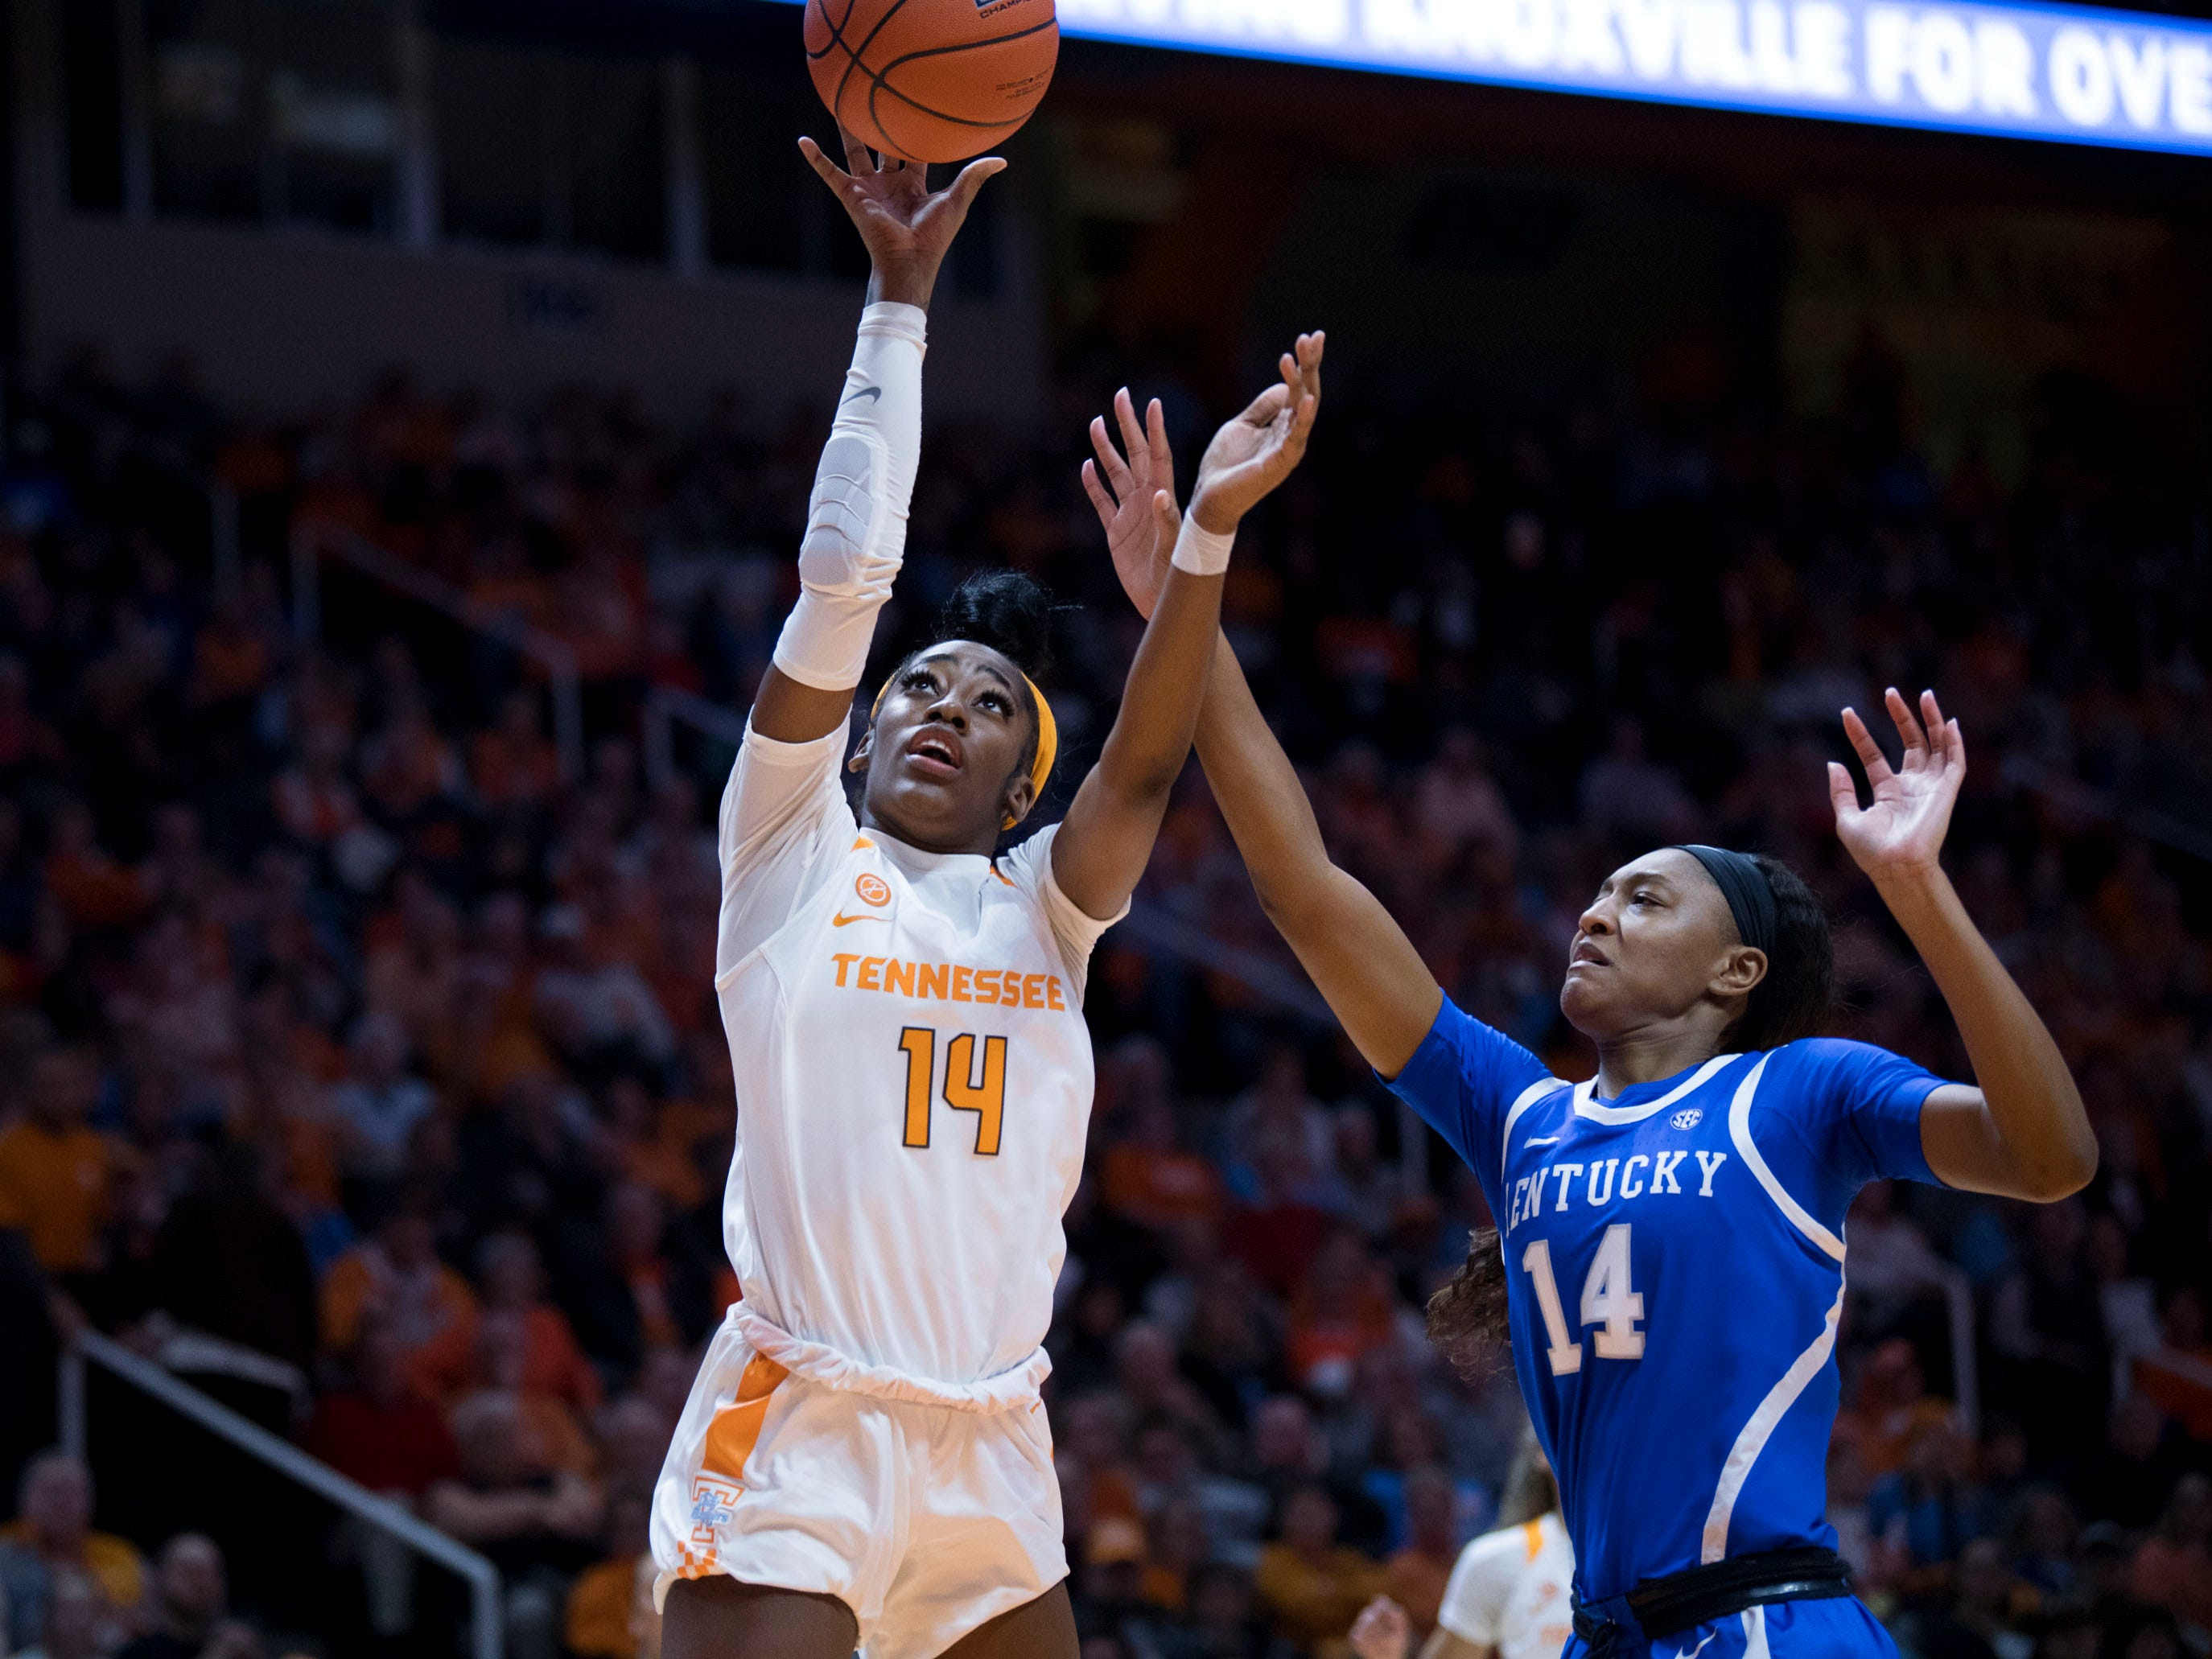 Tennessee's Zaay Green (14) shoots and scores while guarded by Kentucky's Tatyana Wyatt (14) on Thursday, January 10, 2019.